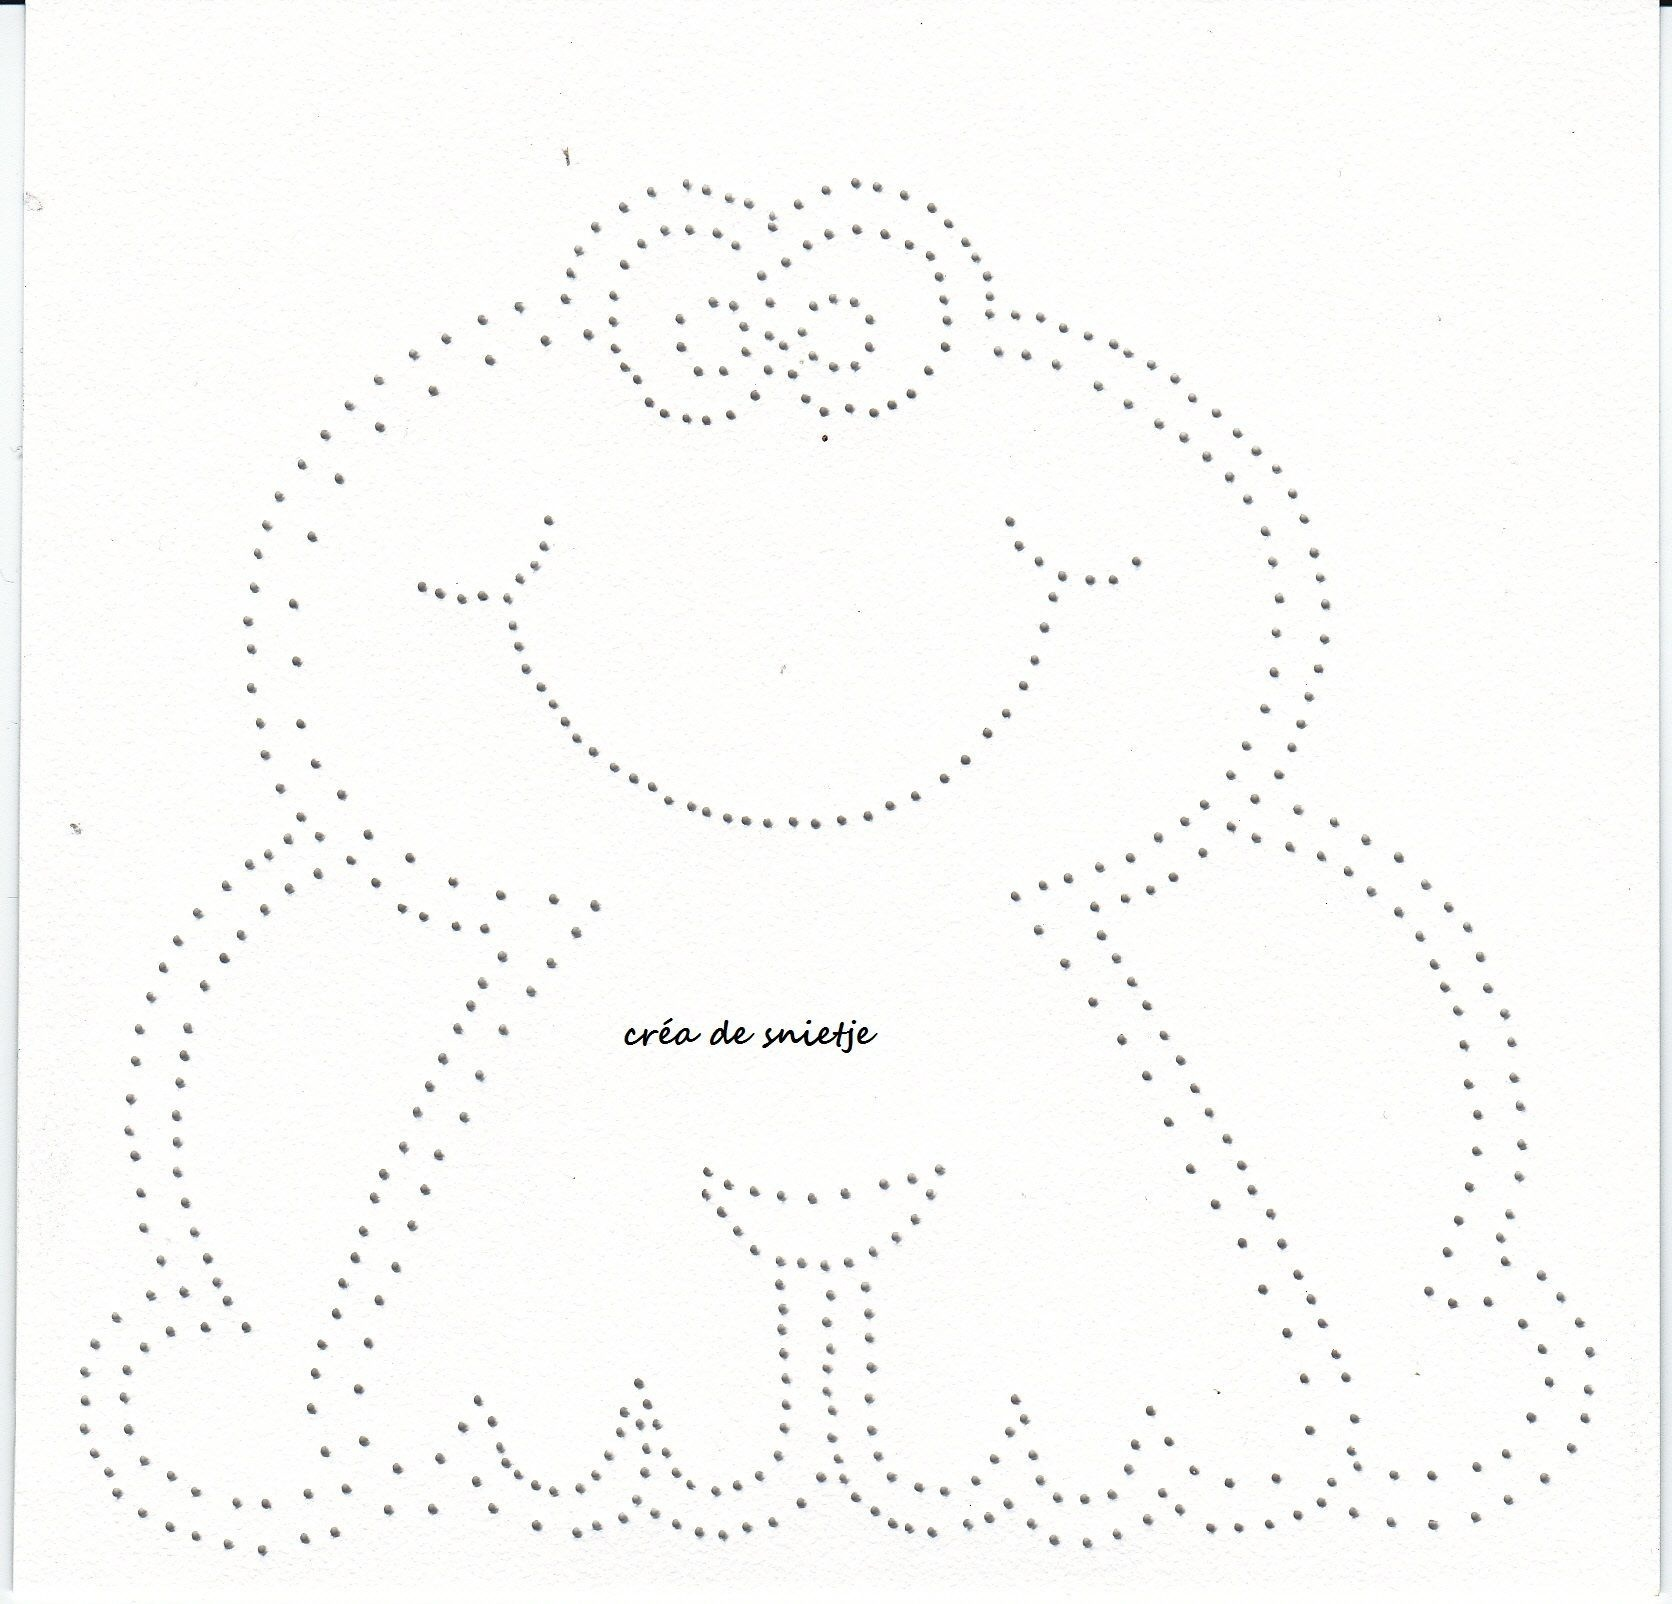 Paper Embroidery Templates. Embroidery On Paper Templates Embroidery - Free Printable Paper Pricking Patterns